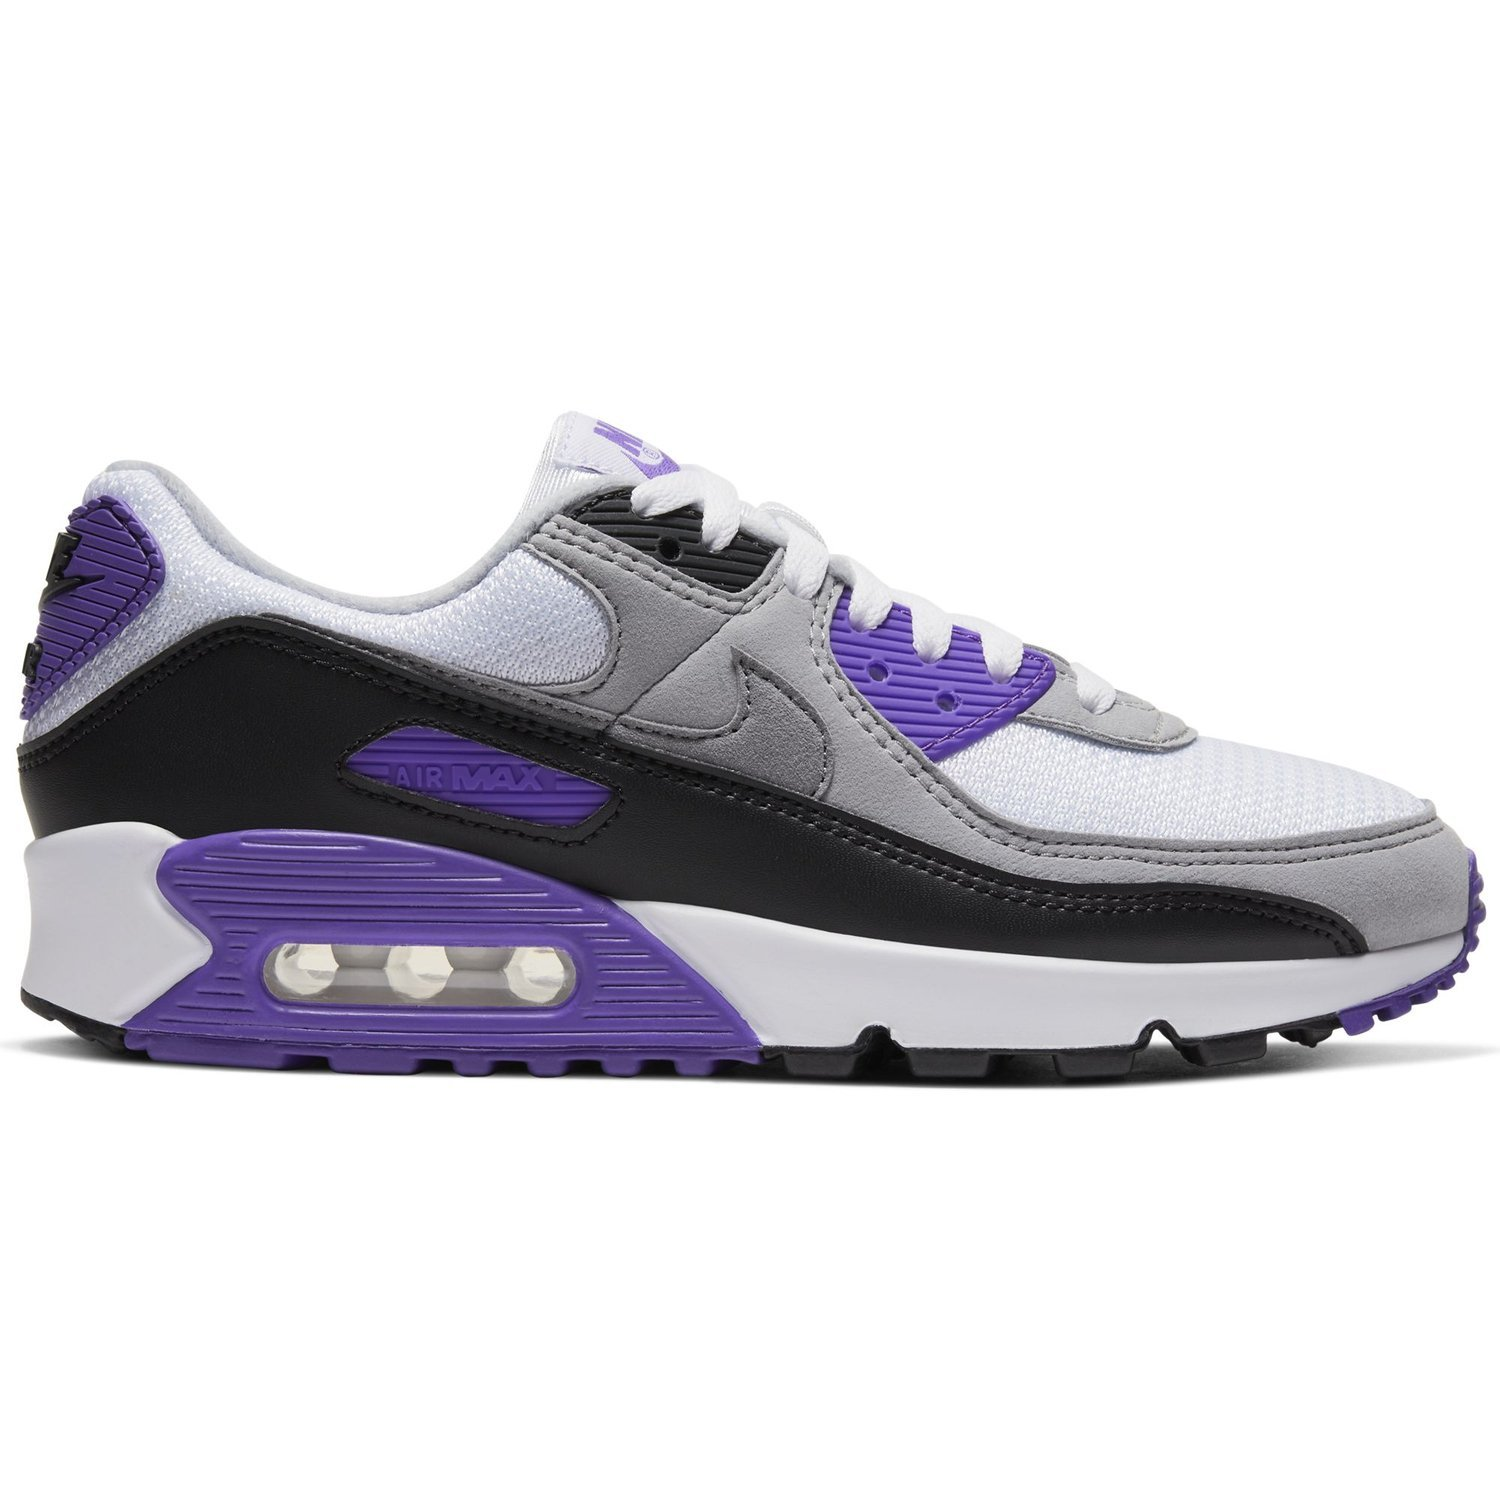 BUTY DAMSKIE NIKE AIR MAX 90 MULTIKOLOR CD0490 103